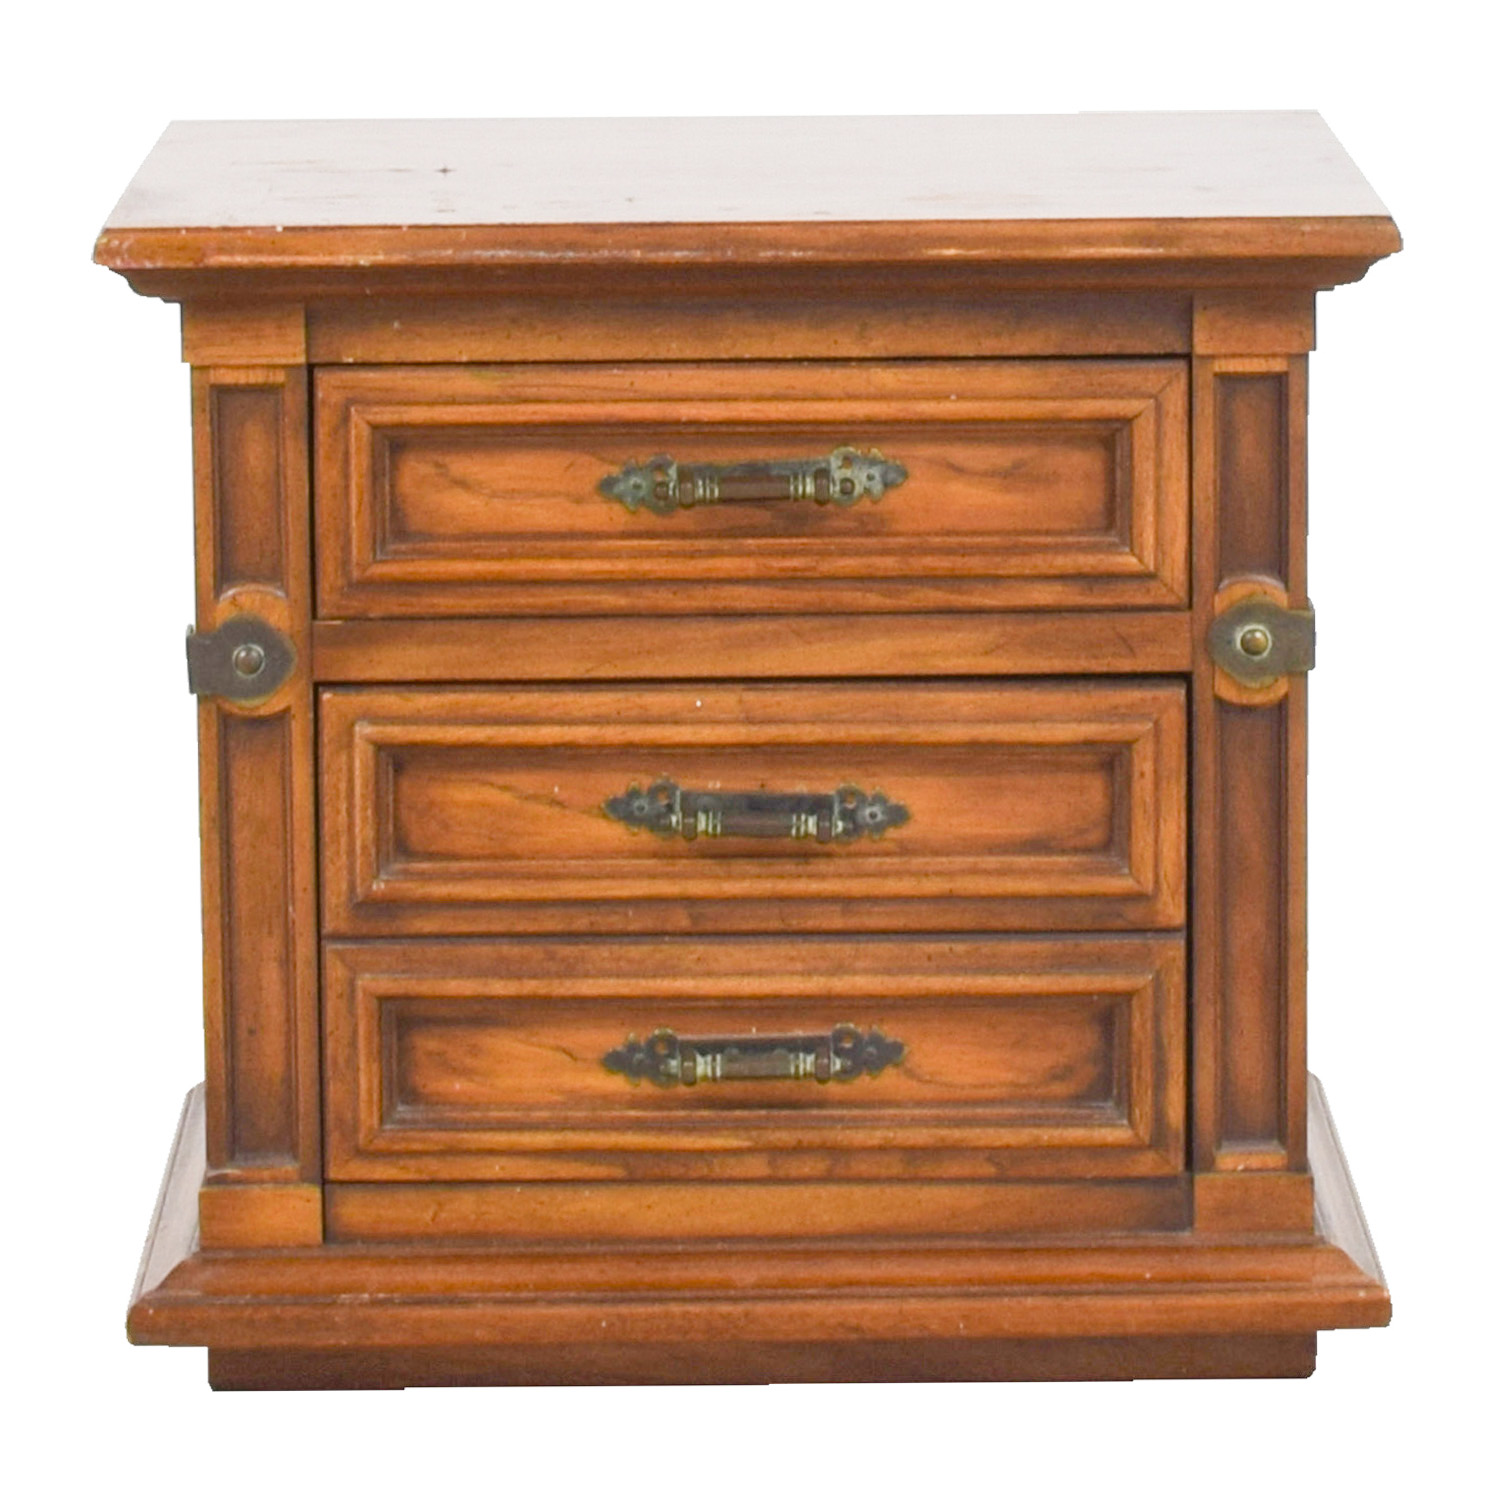 Two-Drawer Wood Nightstand on sale